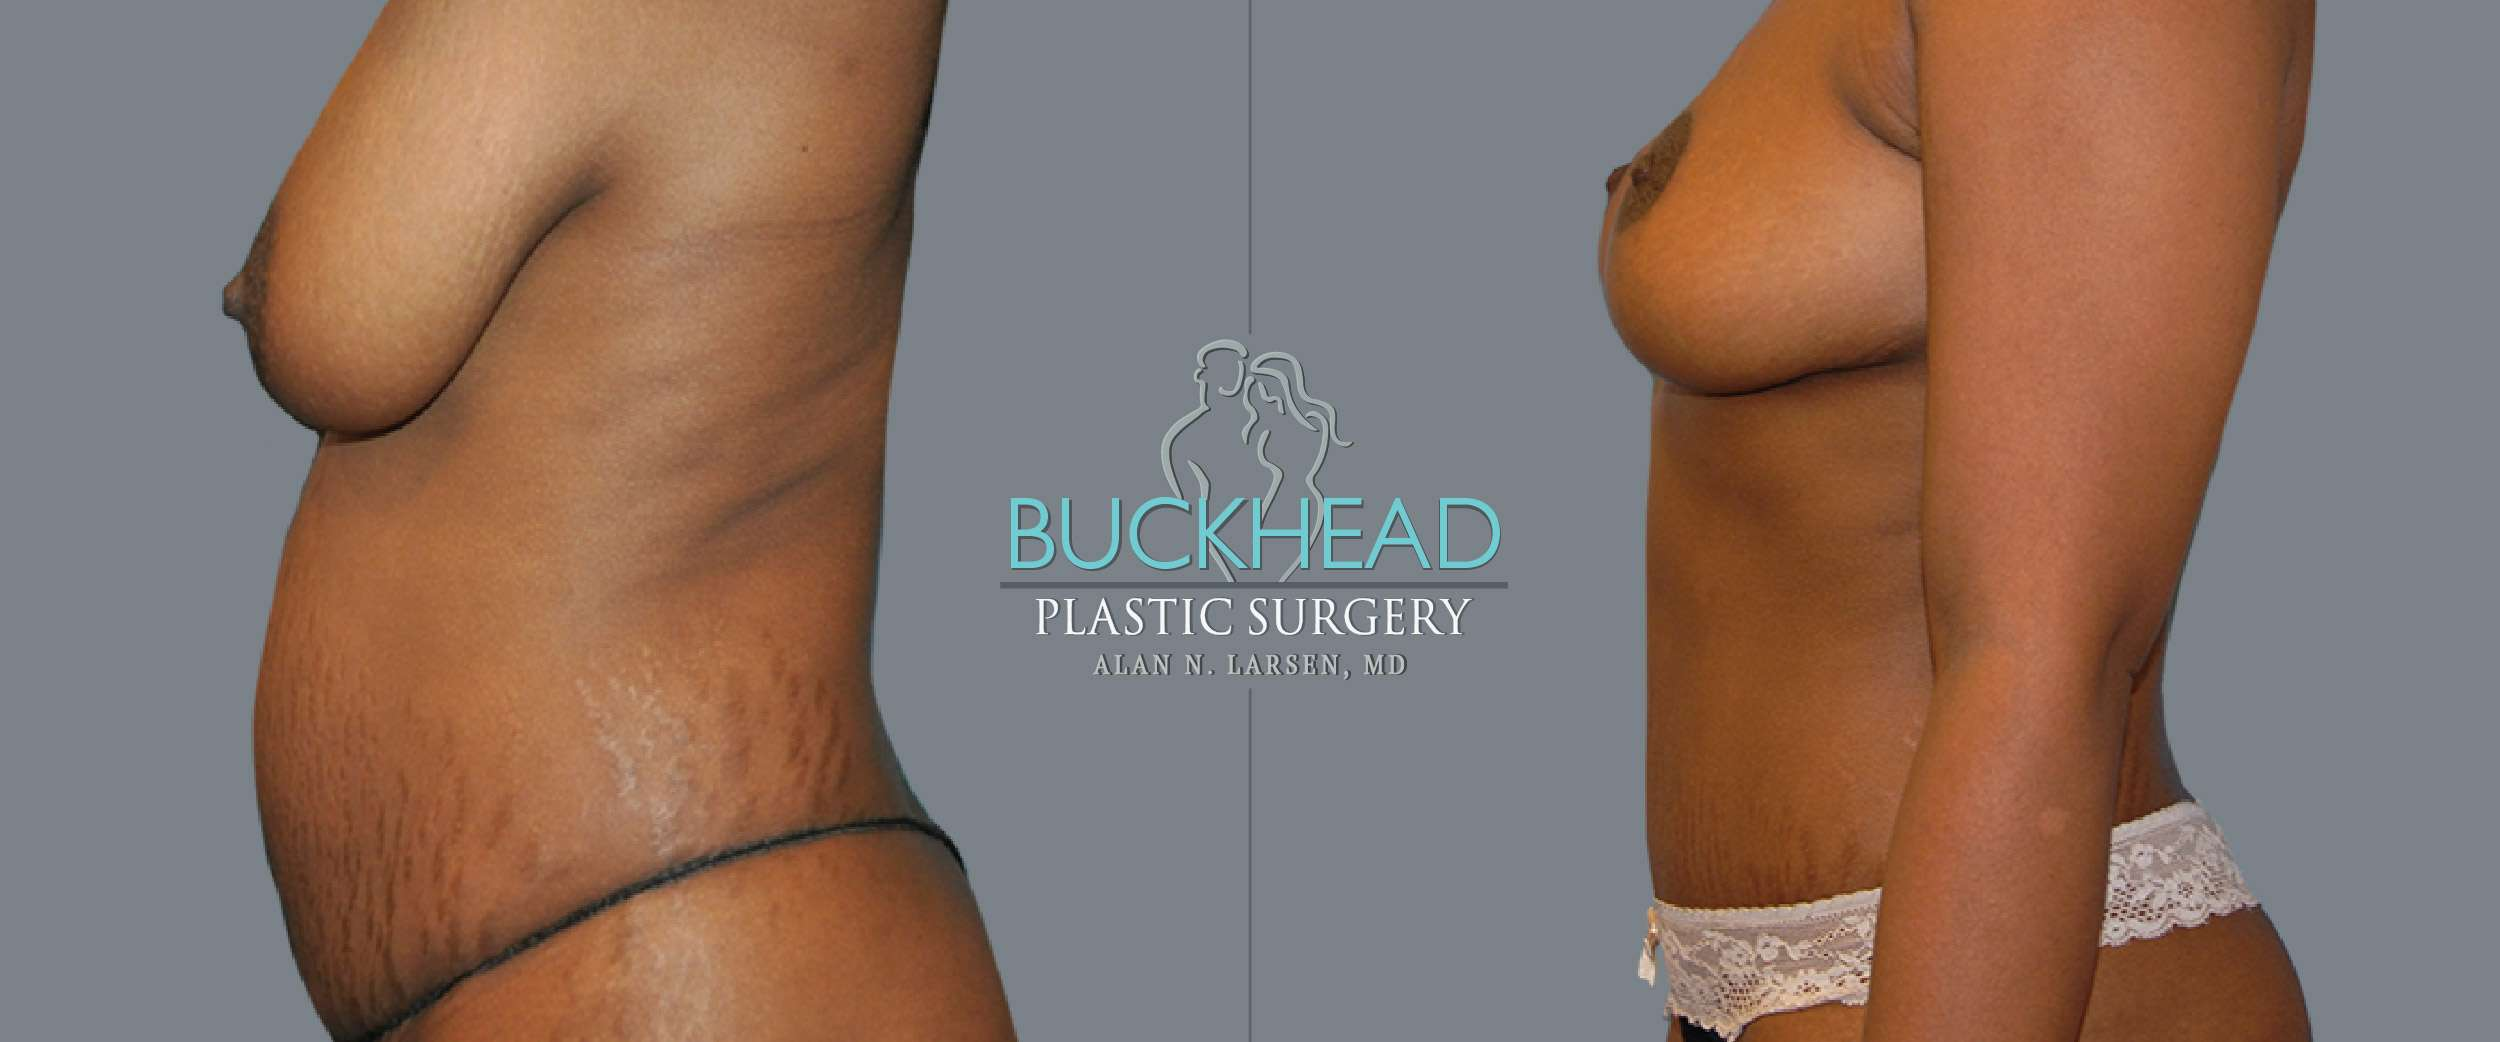 Before and After Photo gallery | Tummy Tuck | Buckhead Plastic Surgery | Board-Certified Plastic Surgeon in Atlanta GA